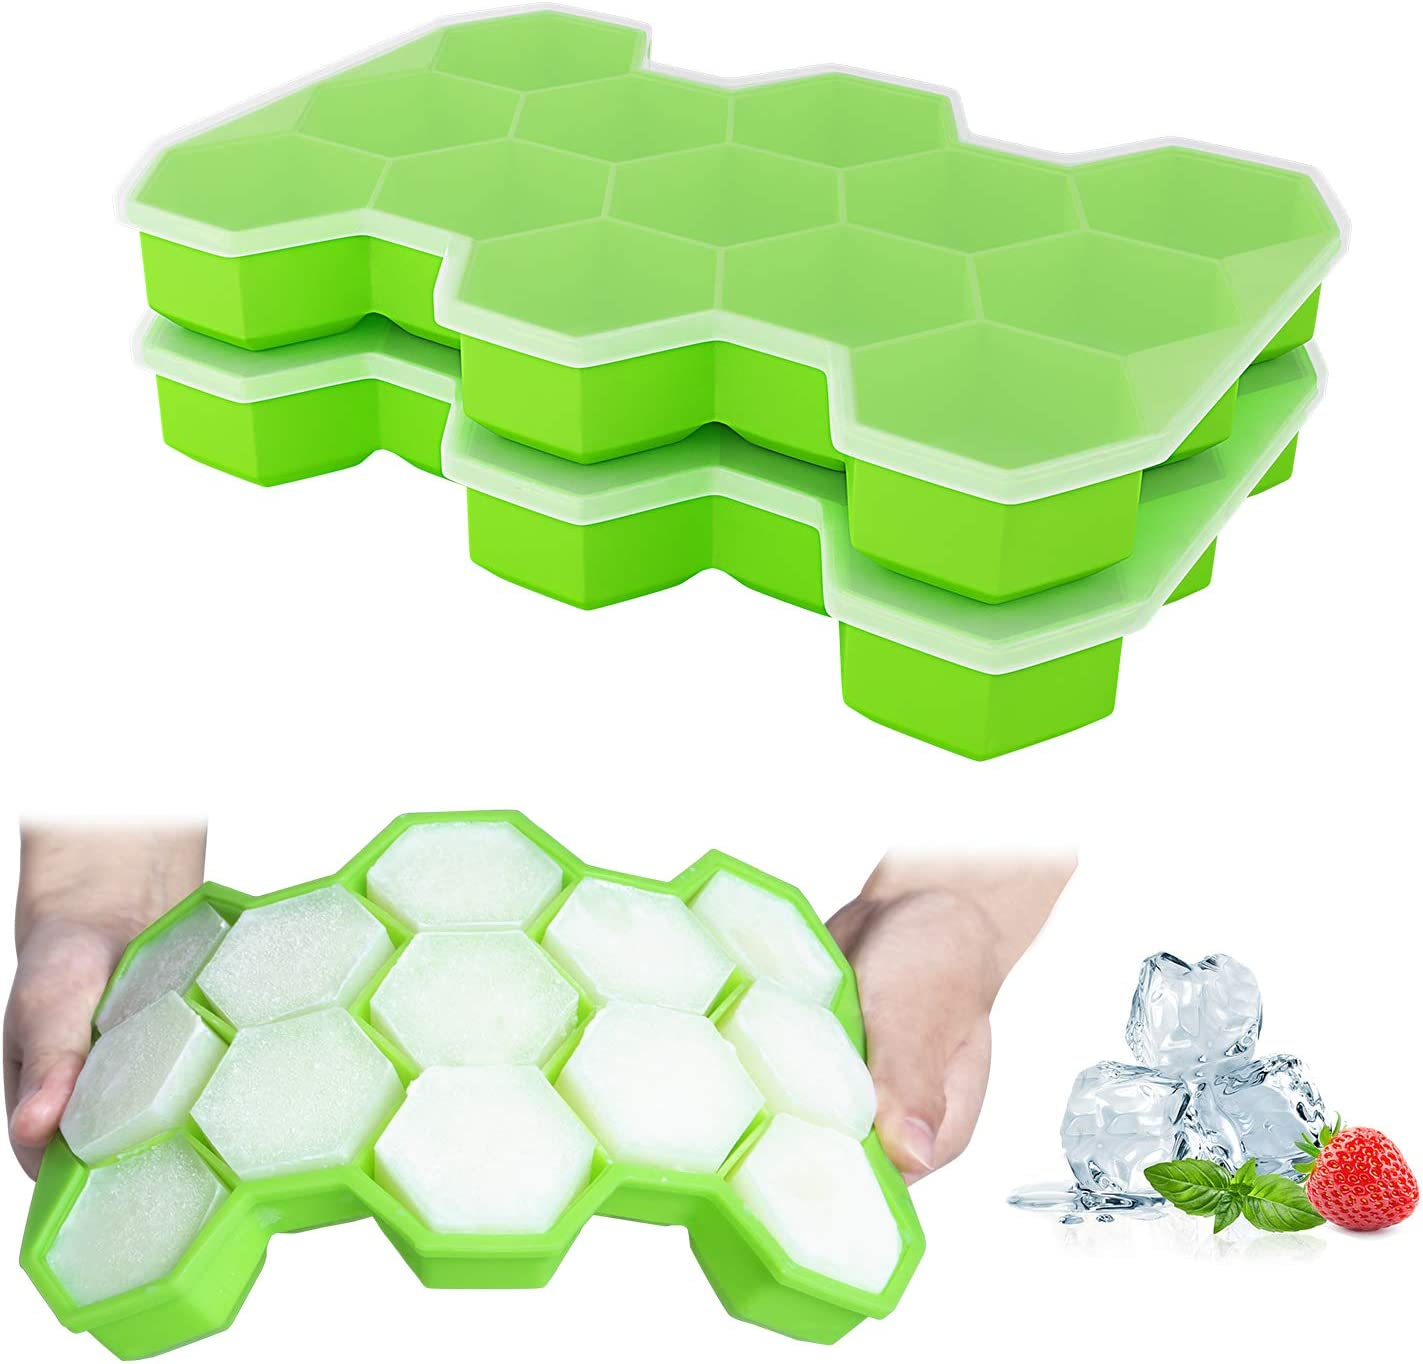 Ozera 2 Pack Silicone Ice Cube Trays Molds, 15 Cavities Ice Tray for Whiskey and Cocktail (Green)